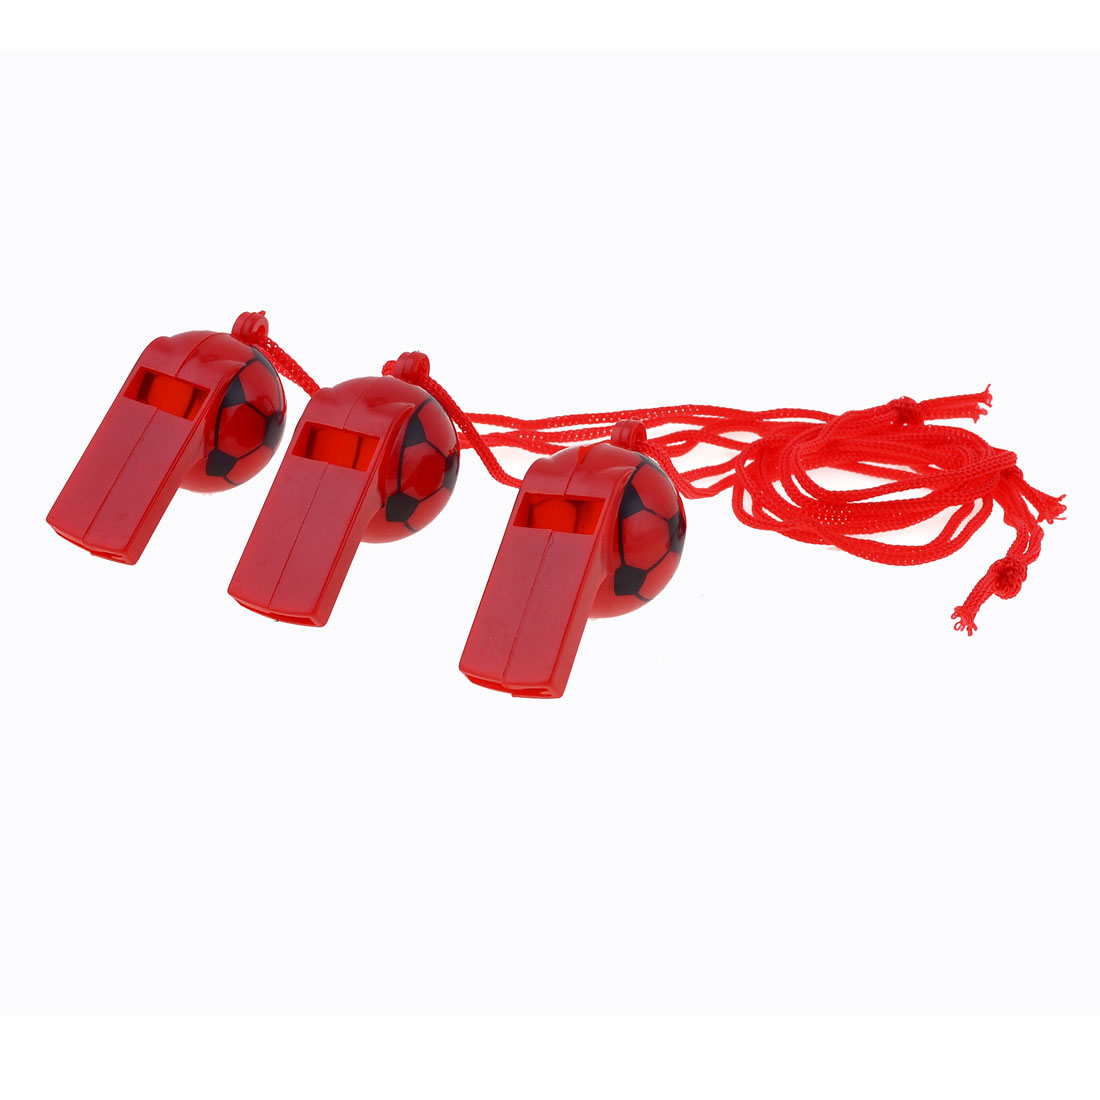 Neck String Football Pattern Plastic Referee Type Whistles Red 3 Pcs